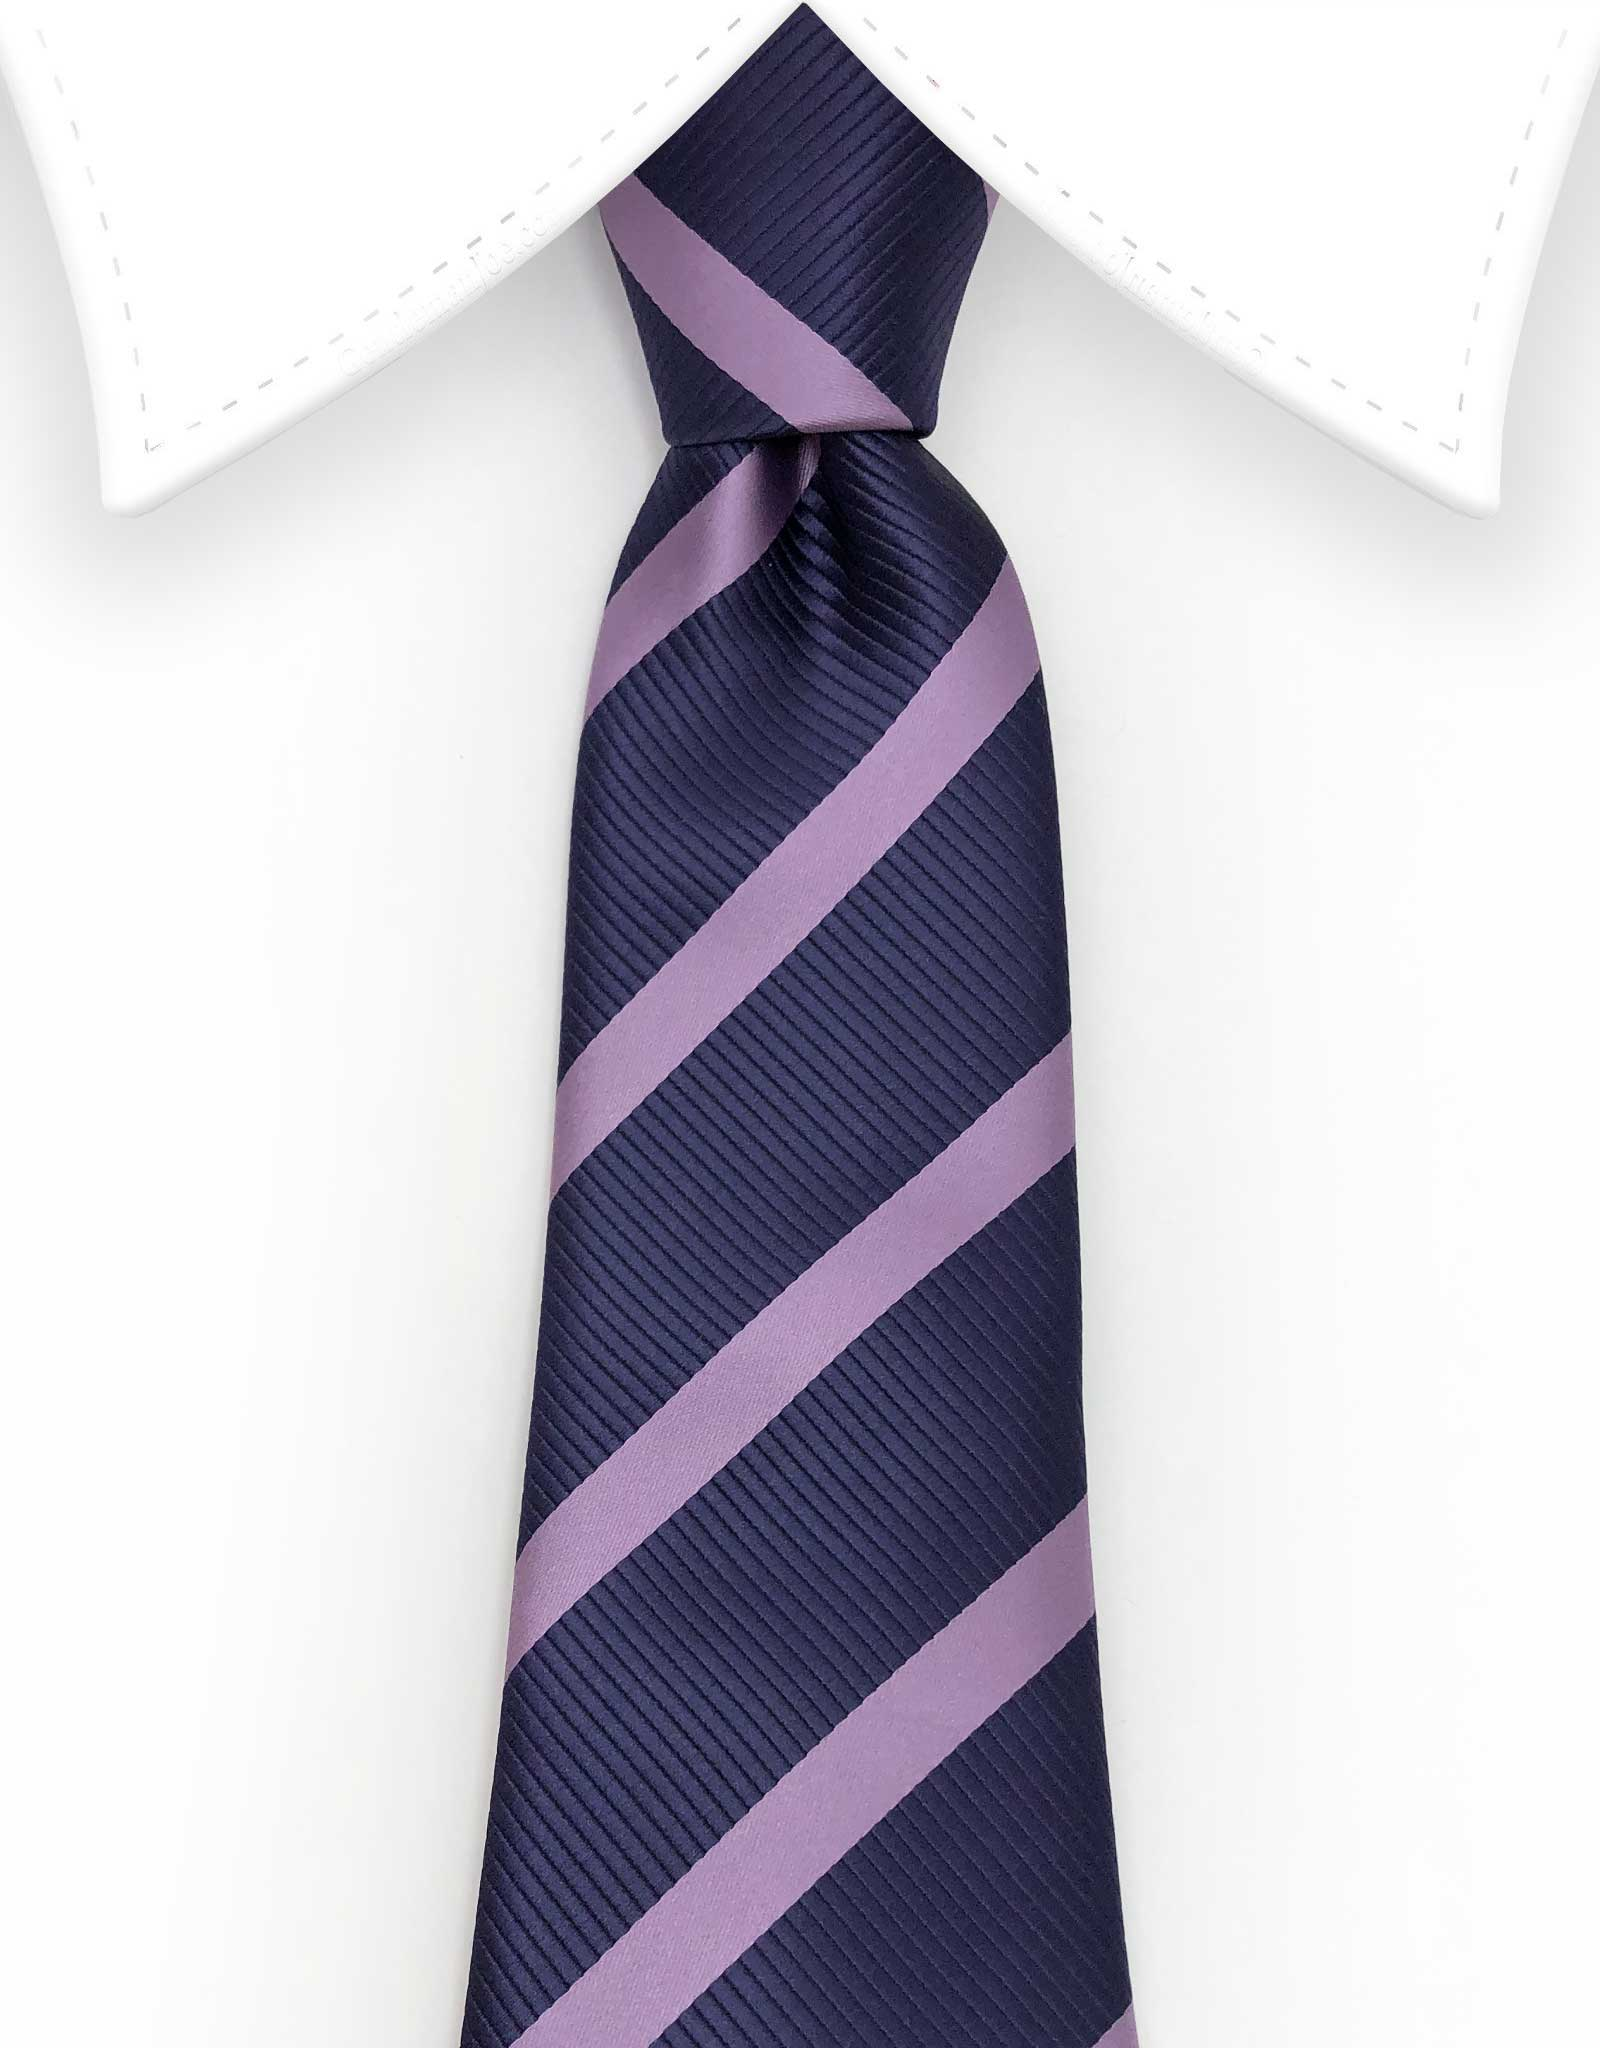 Dark purple and lilac striped tie